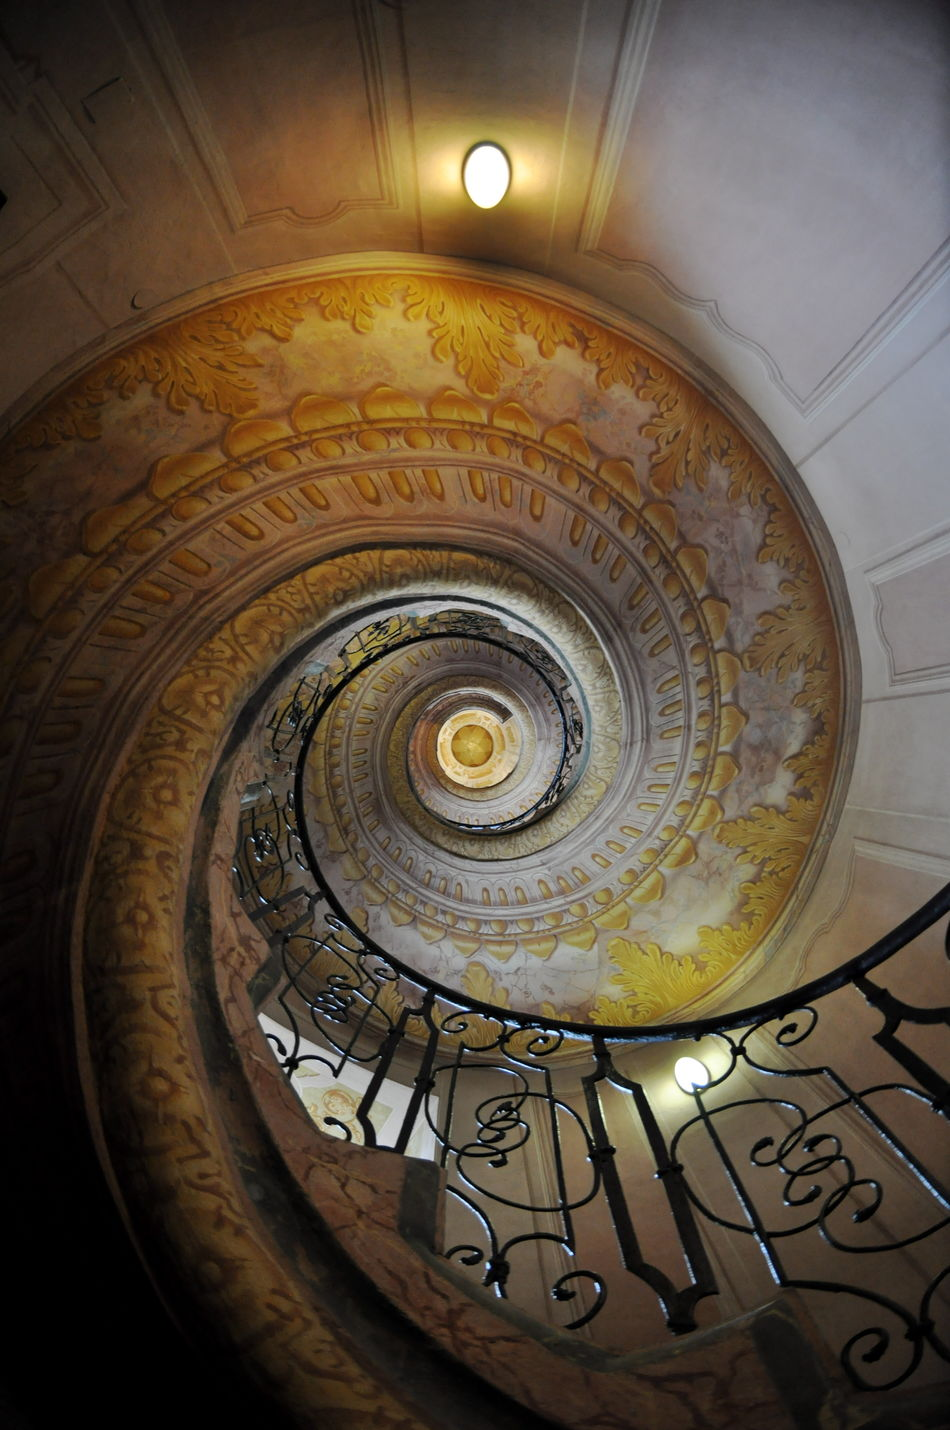 Melk Abbey Stairs Architecture Architecture And Art Built Structure Circle Coil Diminishing Perspective Indoors  Melk Melk Abbey No People Spiral Spiral Staircase Spiral Stairs Staircase Steps Art Is Everywhere